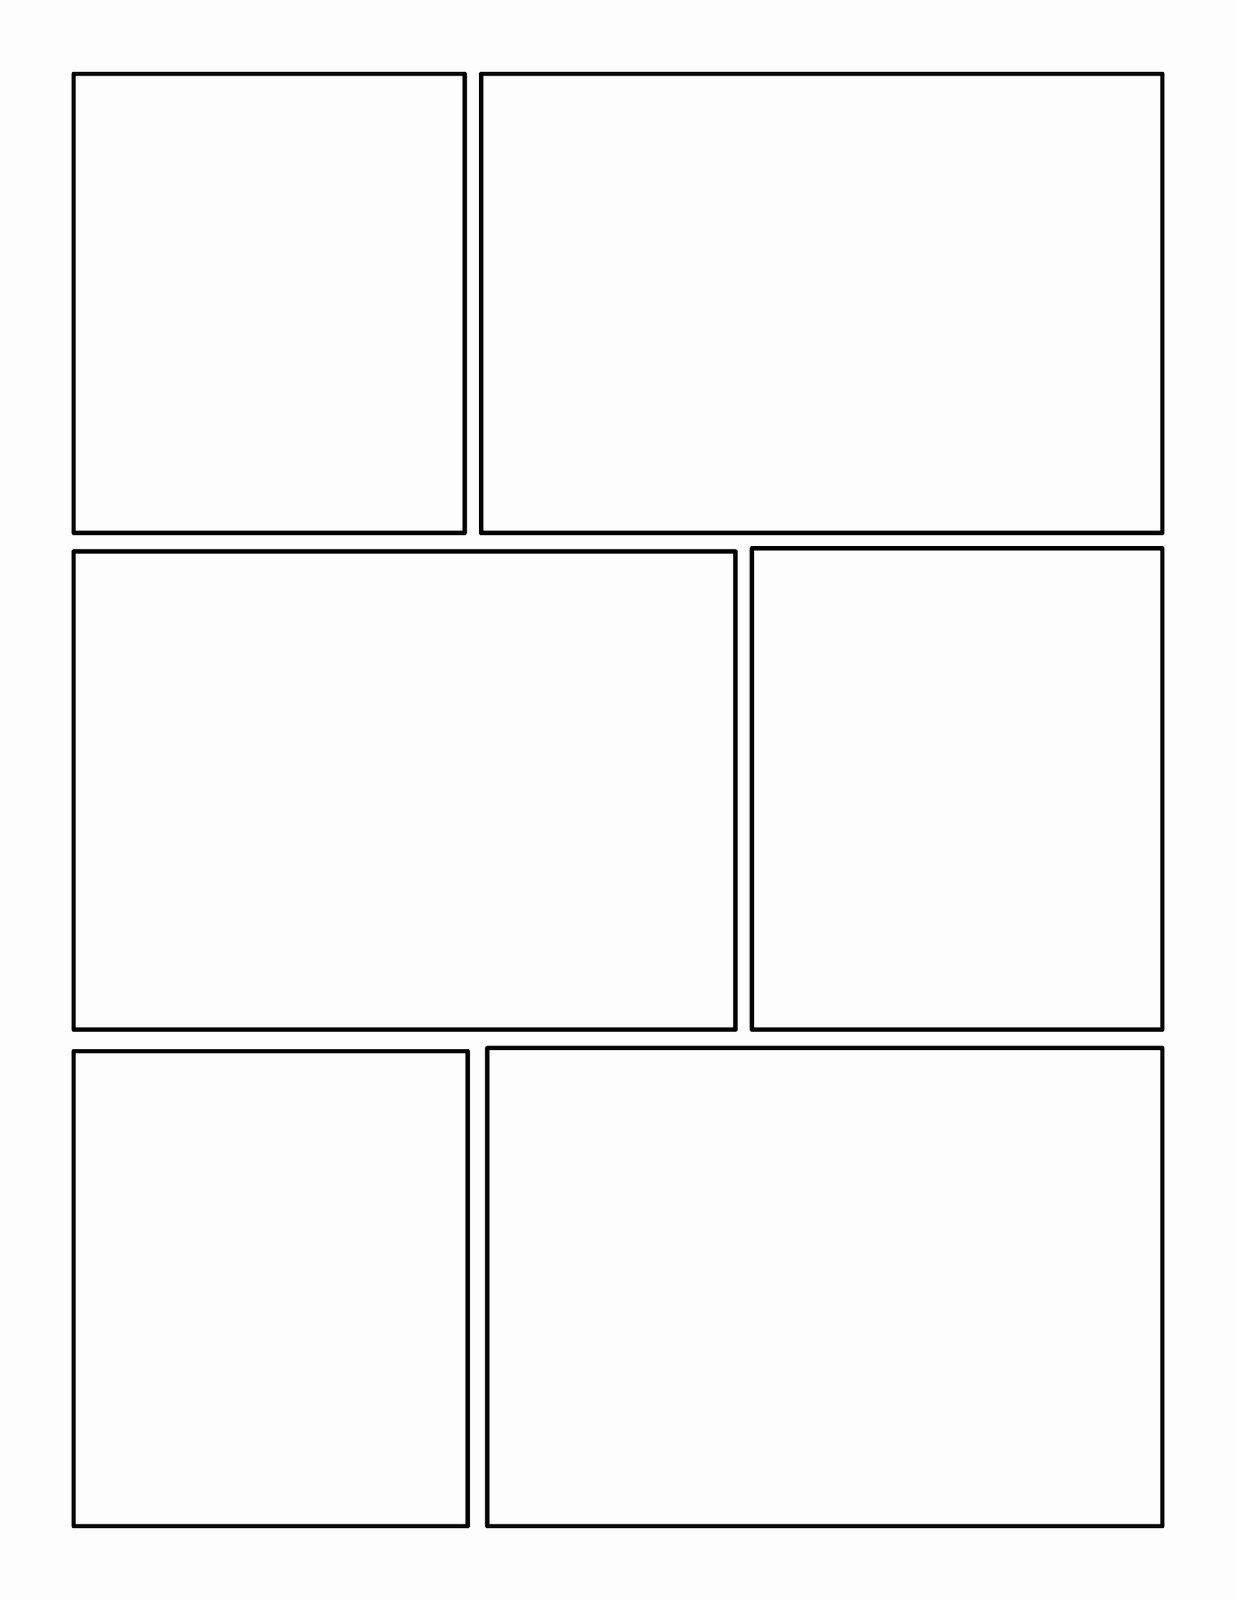 Picture Book Template Printable Fresh Ic Book Template Beepmunk